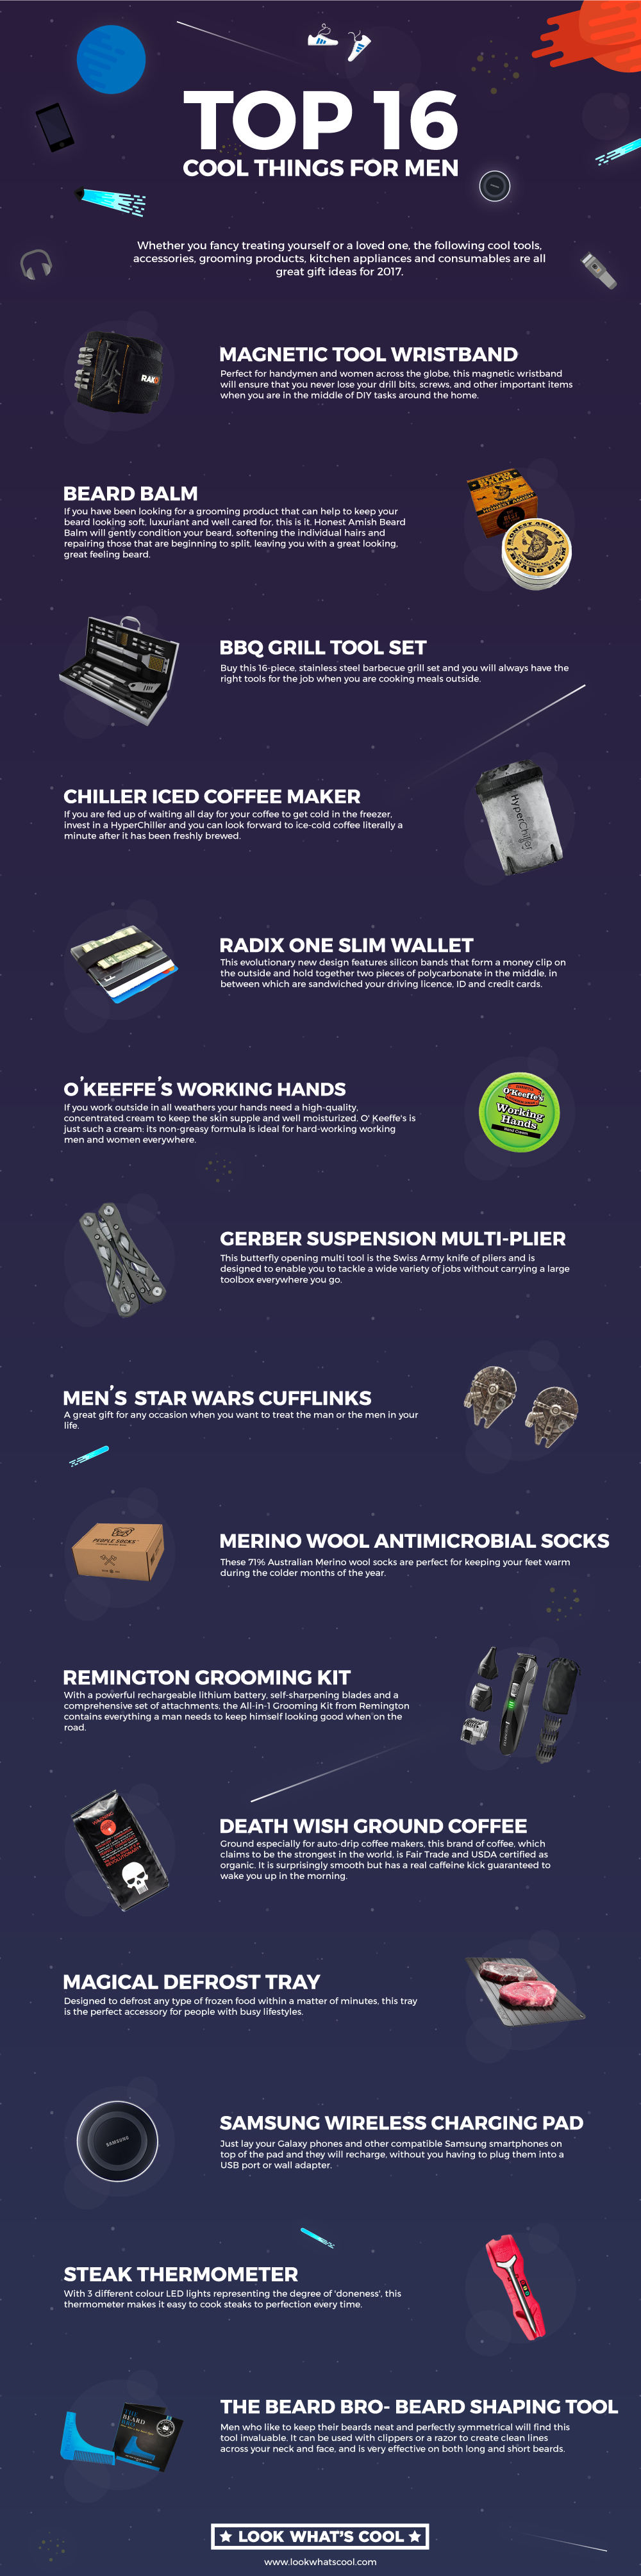 Top 16 Cool Things for Men